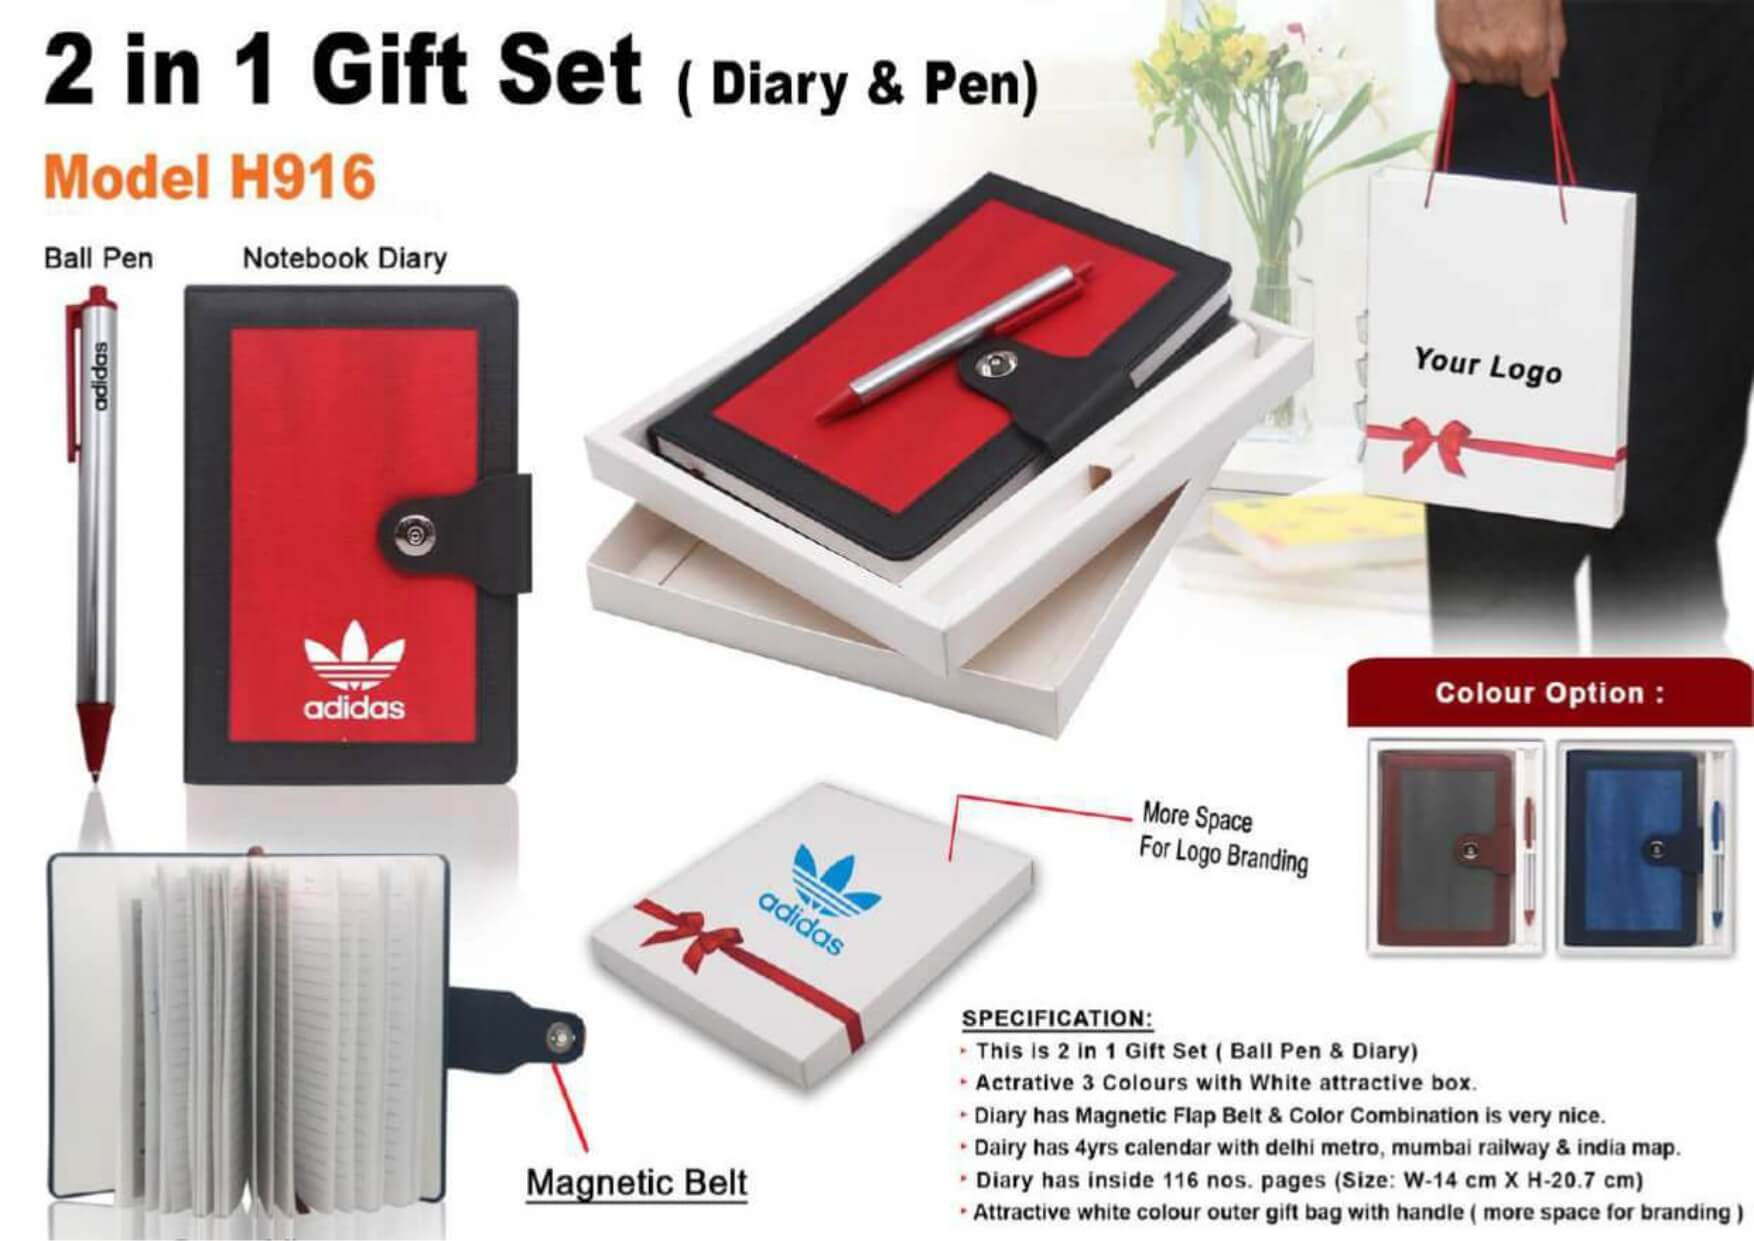 2 in 1 Gift Set Diary and Pen 916